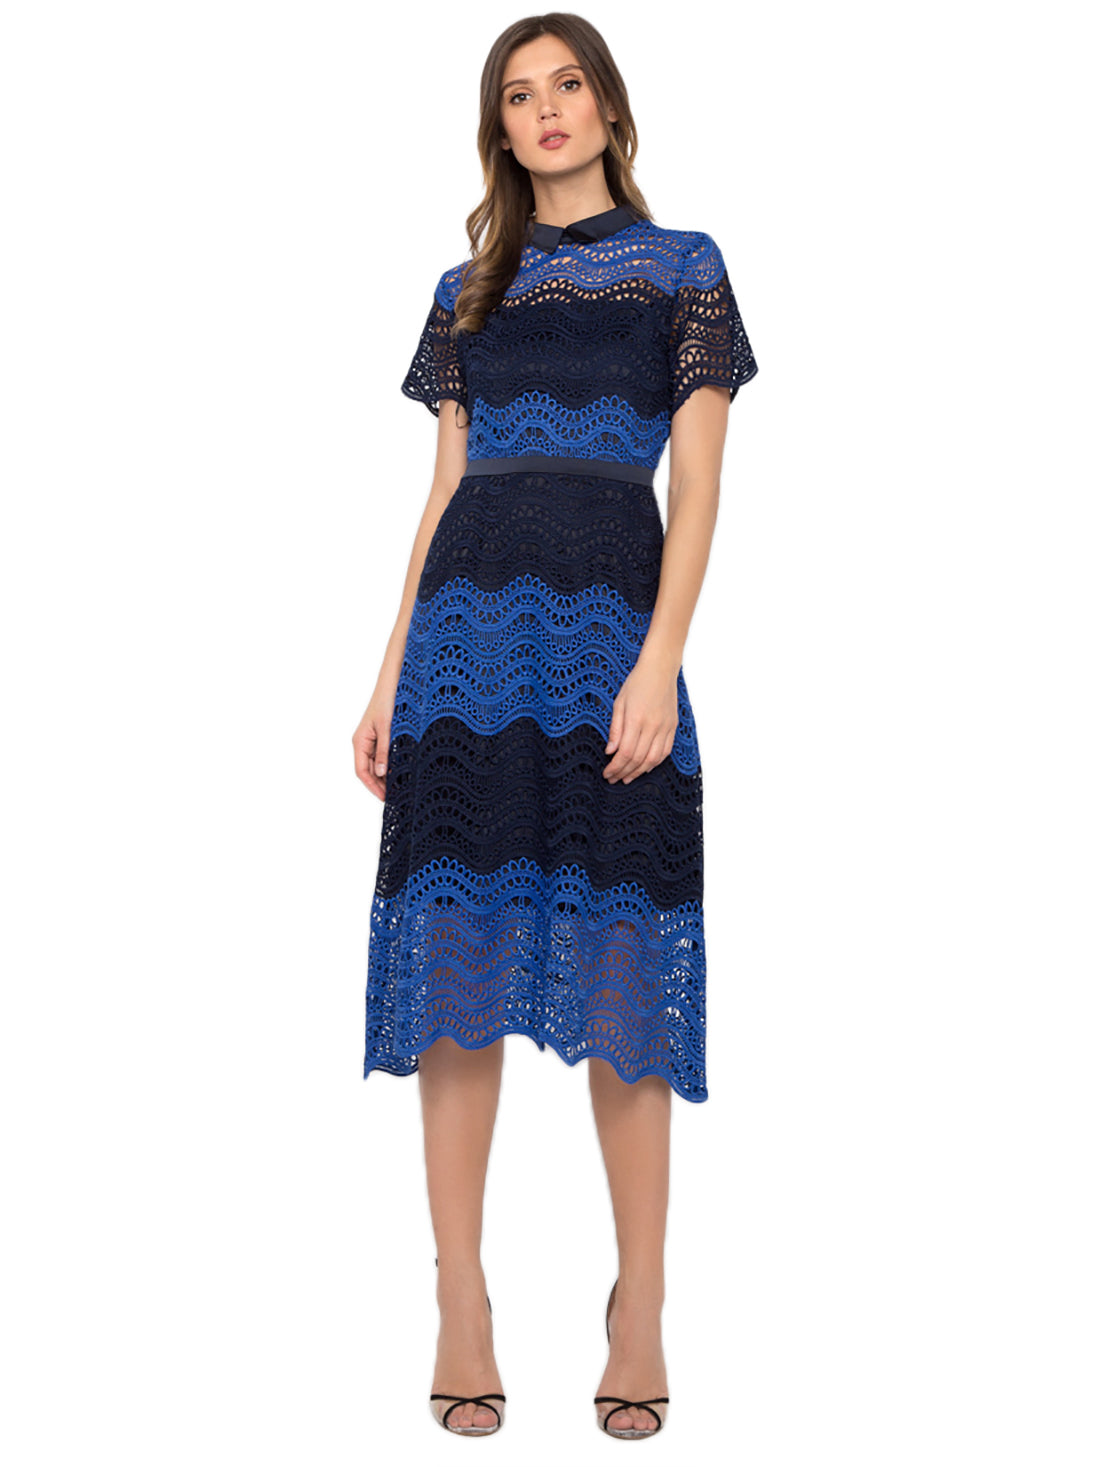 Contrast Blue Crochet Dress